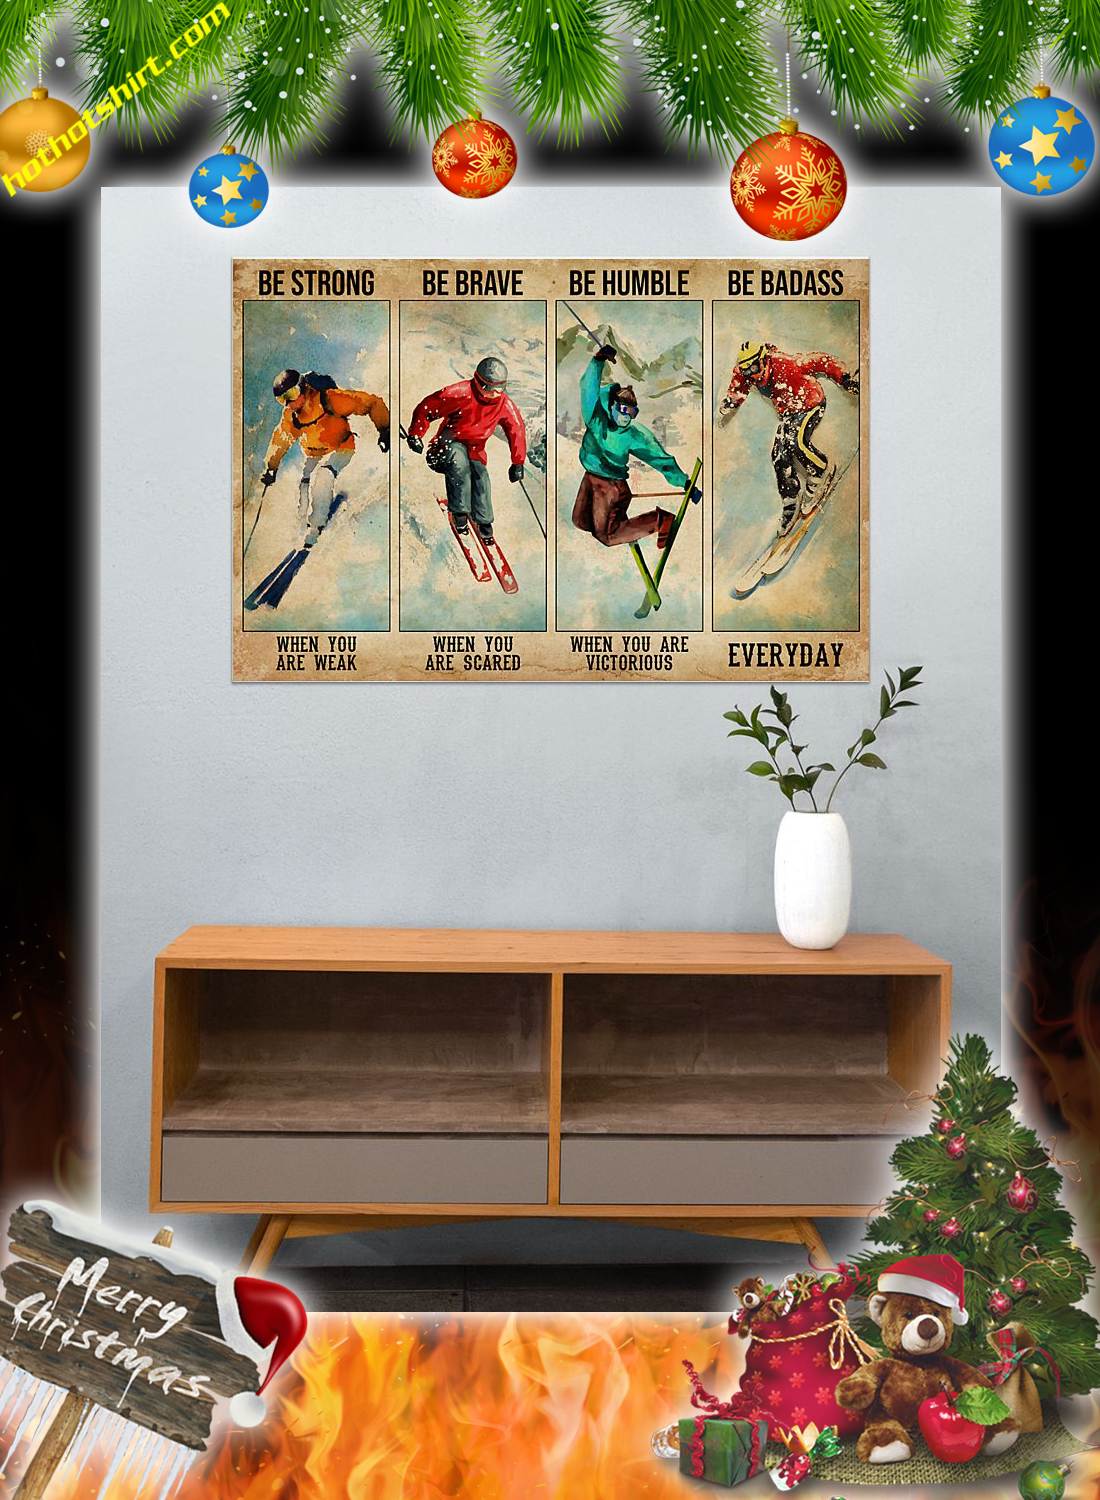 Skiing be strong be brave be humble be badass poster 3